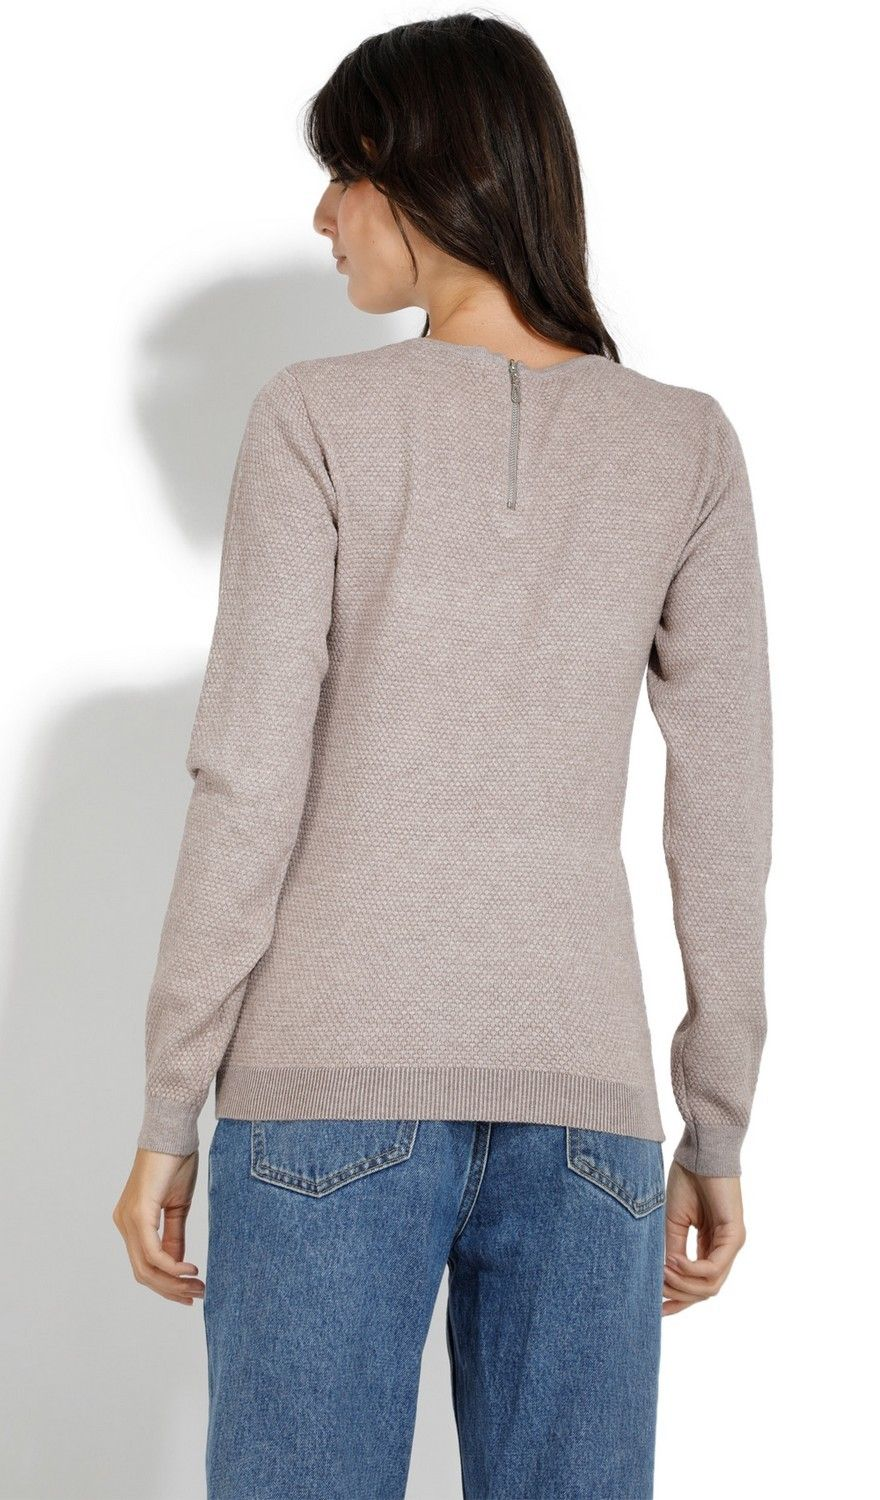 Assuili Round Neck Zip Back Sweater in Beige